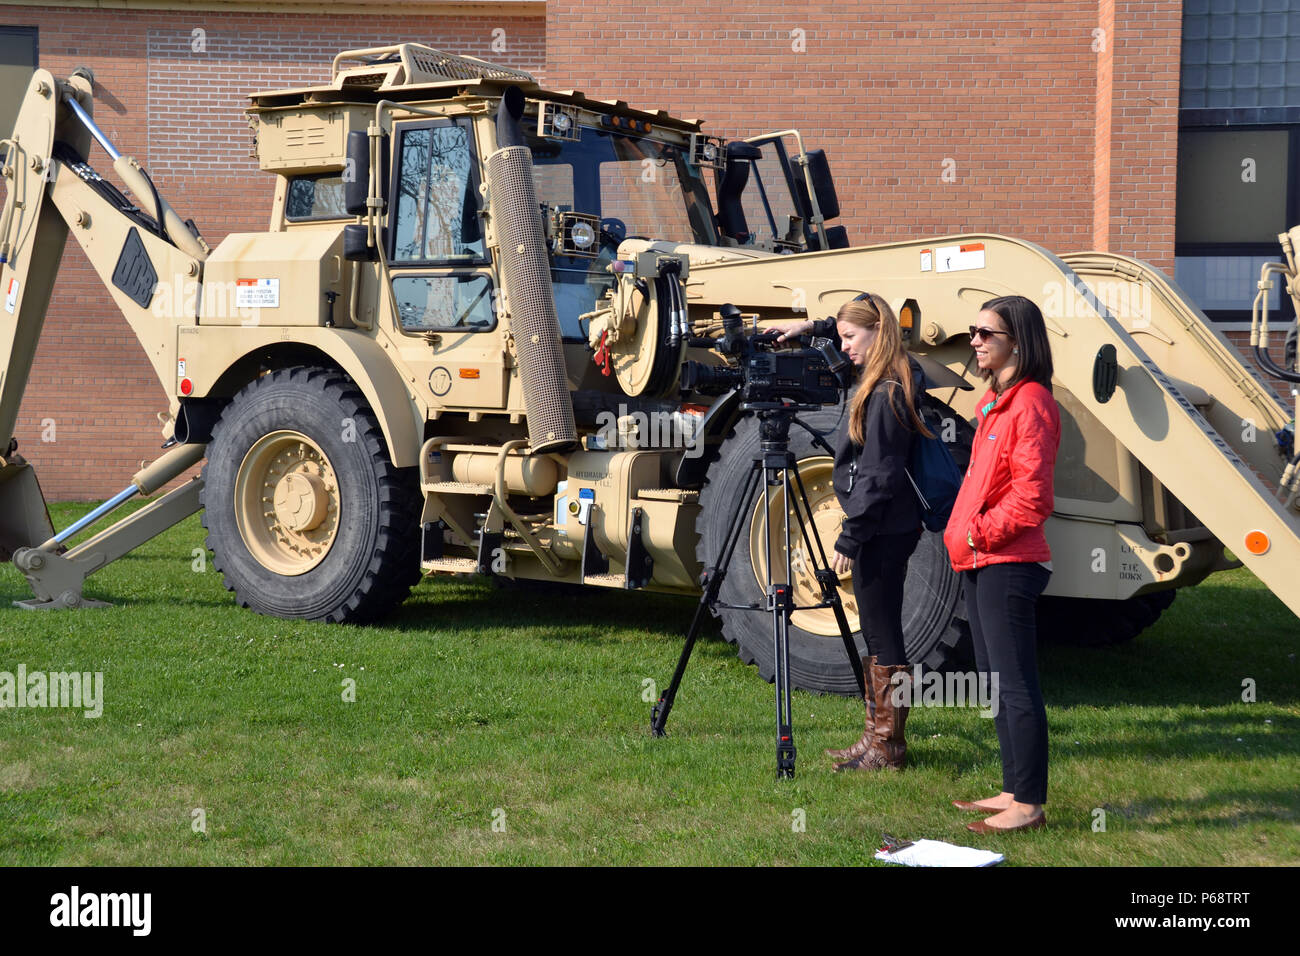 A News Crew From WWTV Channels 9 And 10 In Northern Michigan Films High School Students Interacting With Members Of The Sault Ste